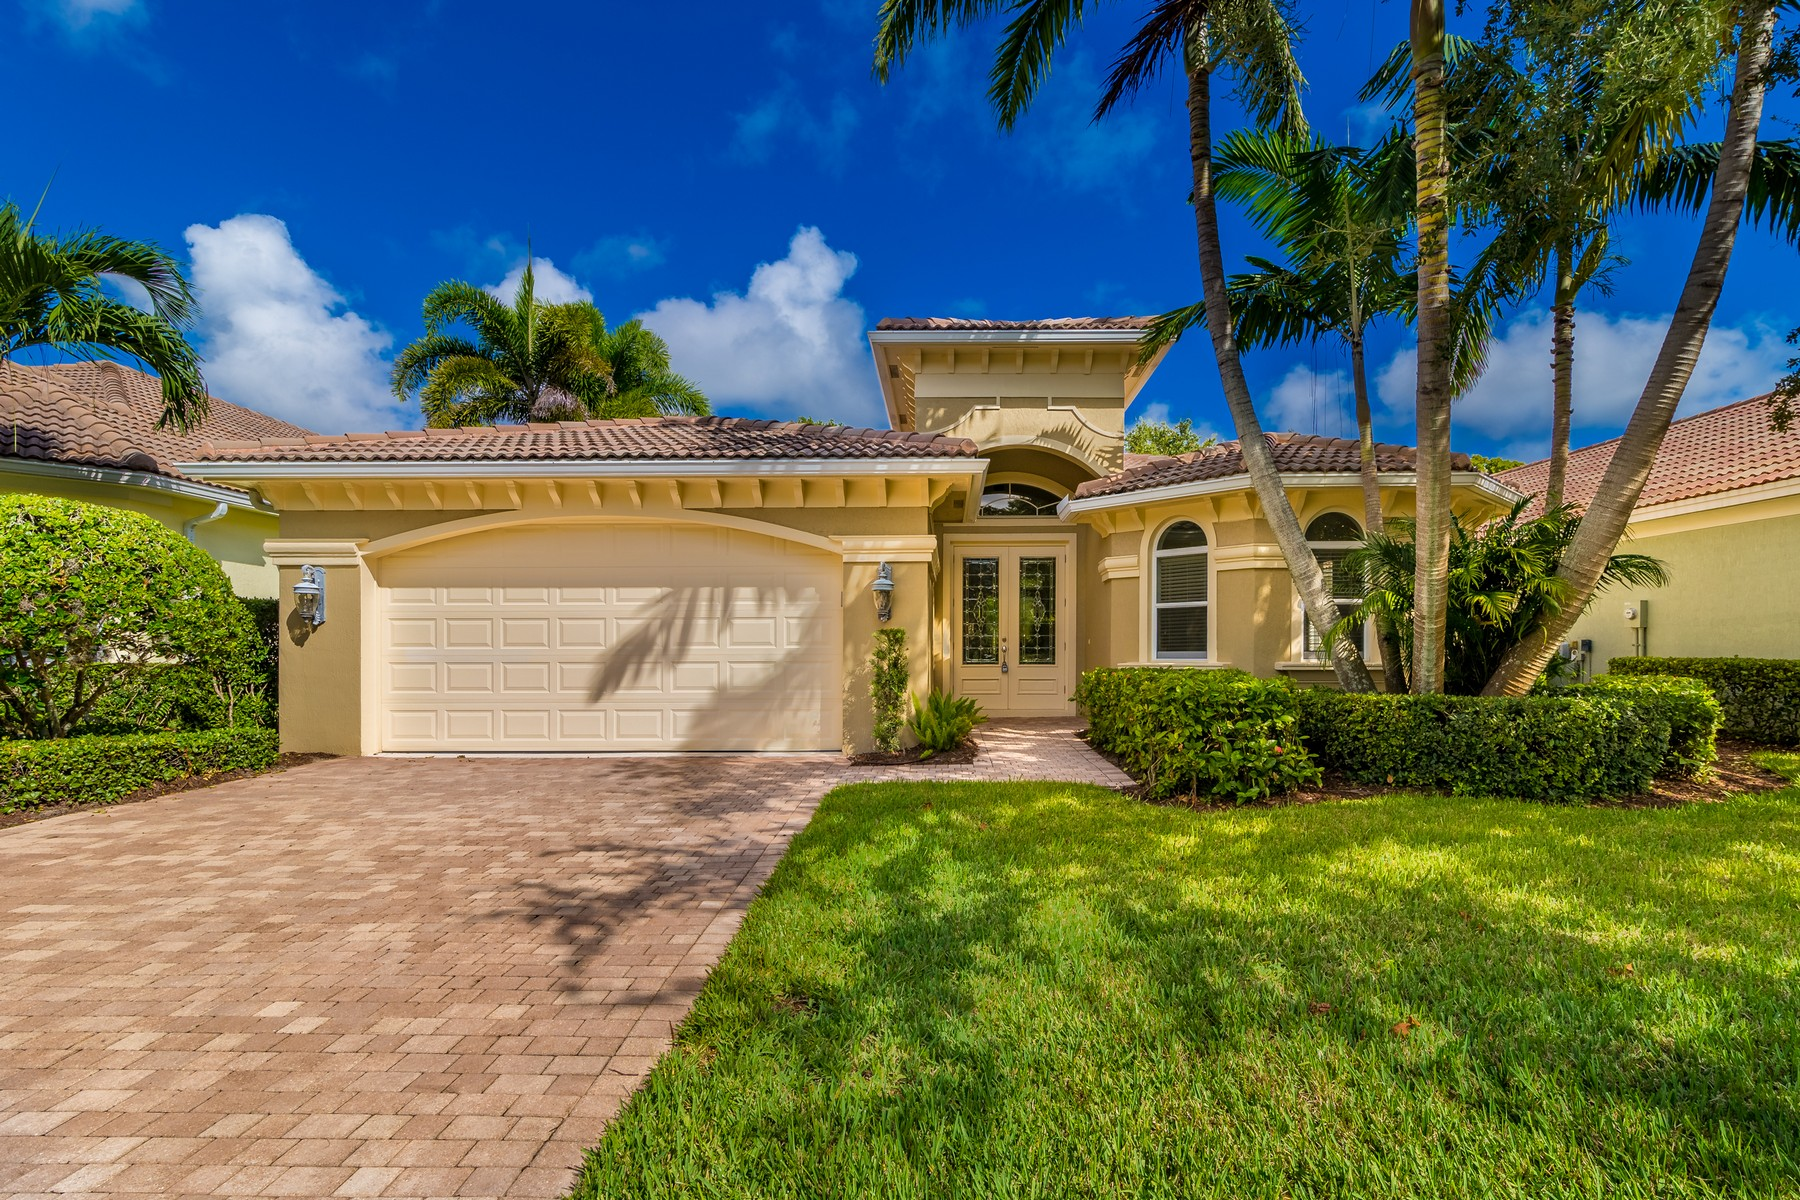 Single Family Homes for Sale at Lakefront Home in Grand Harbor 2186 Falls Circle Vero Beach, Florida 32967 United States